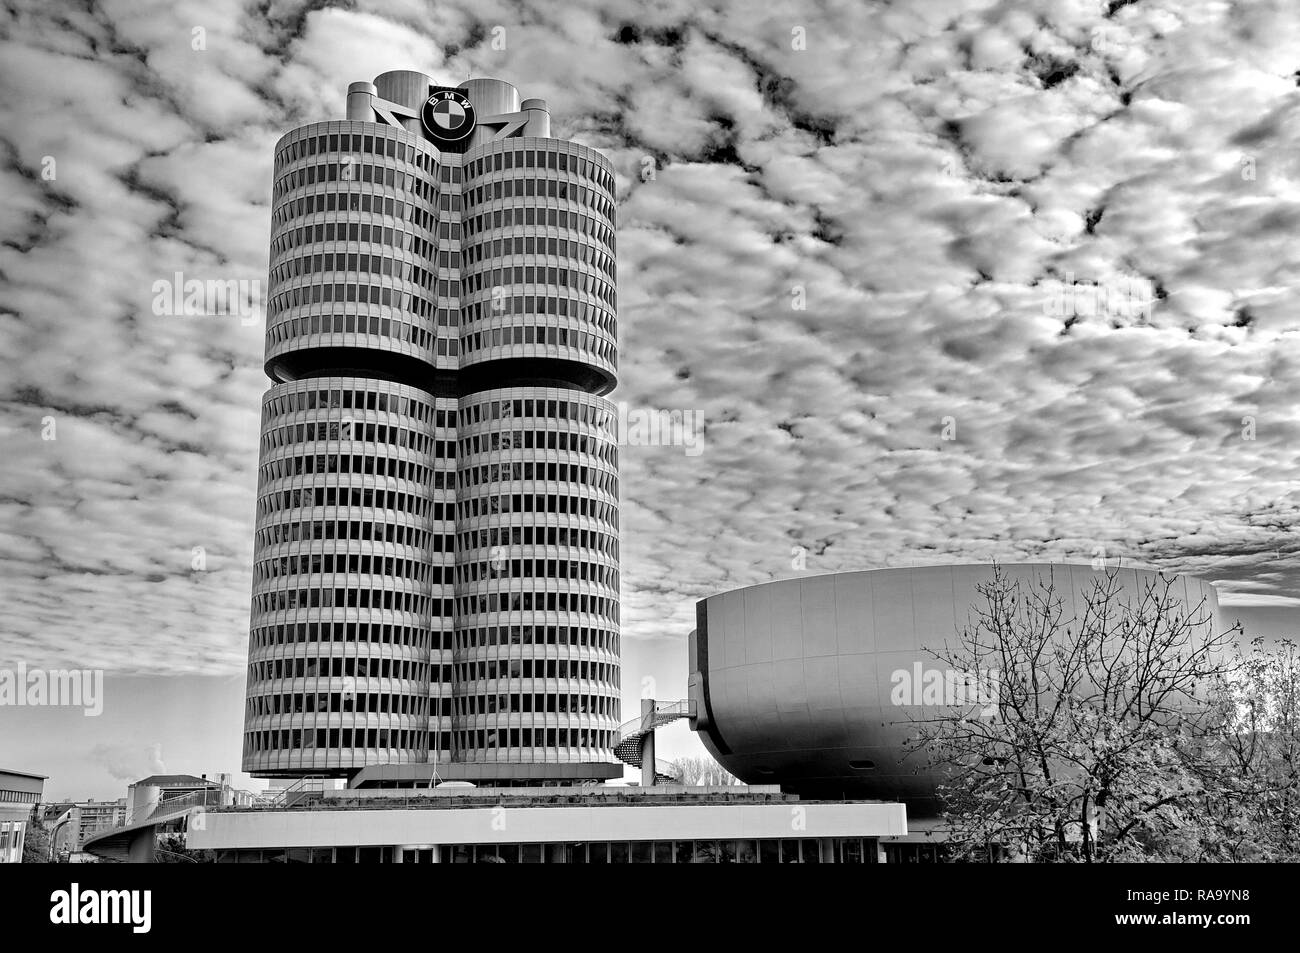 MUNICH - GERMANYOCTOBER 31: BMW building museum on June 31, 2014, Munich, Germany. The BMW Museum is located near the Olympiapark in Munich and was es - Stock Image